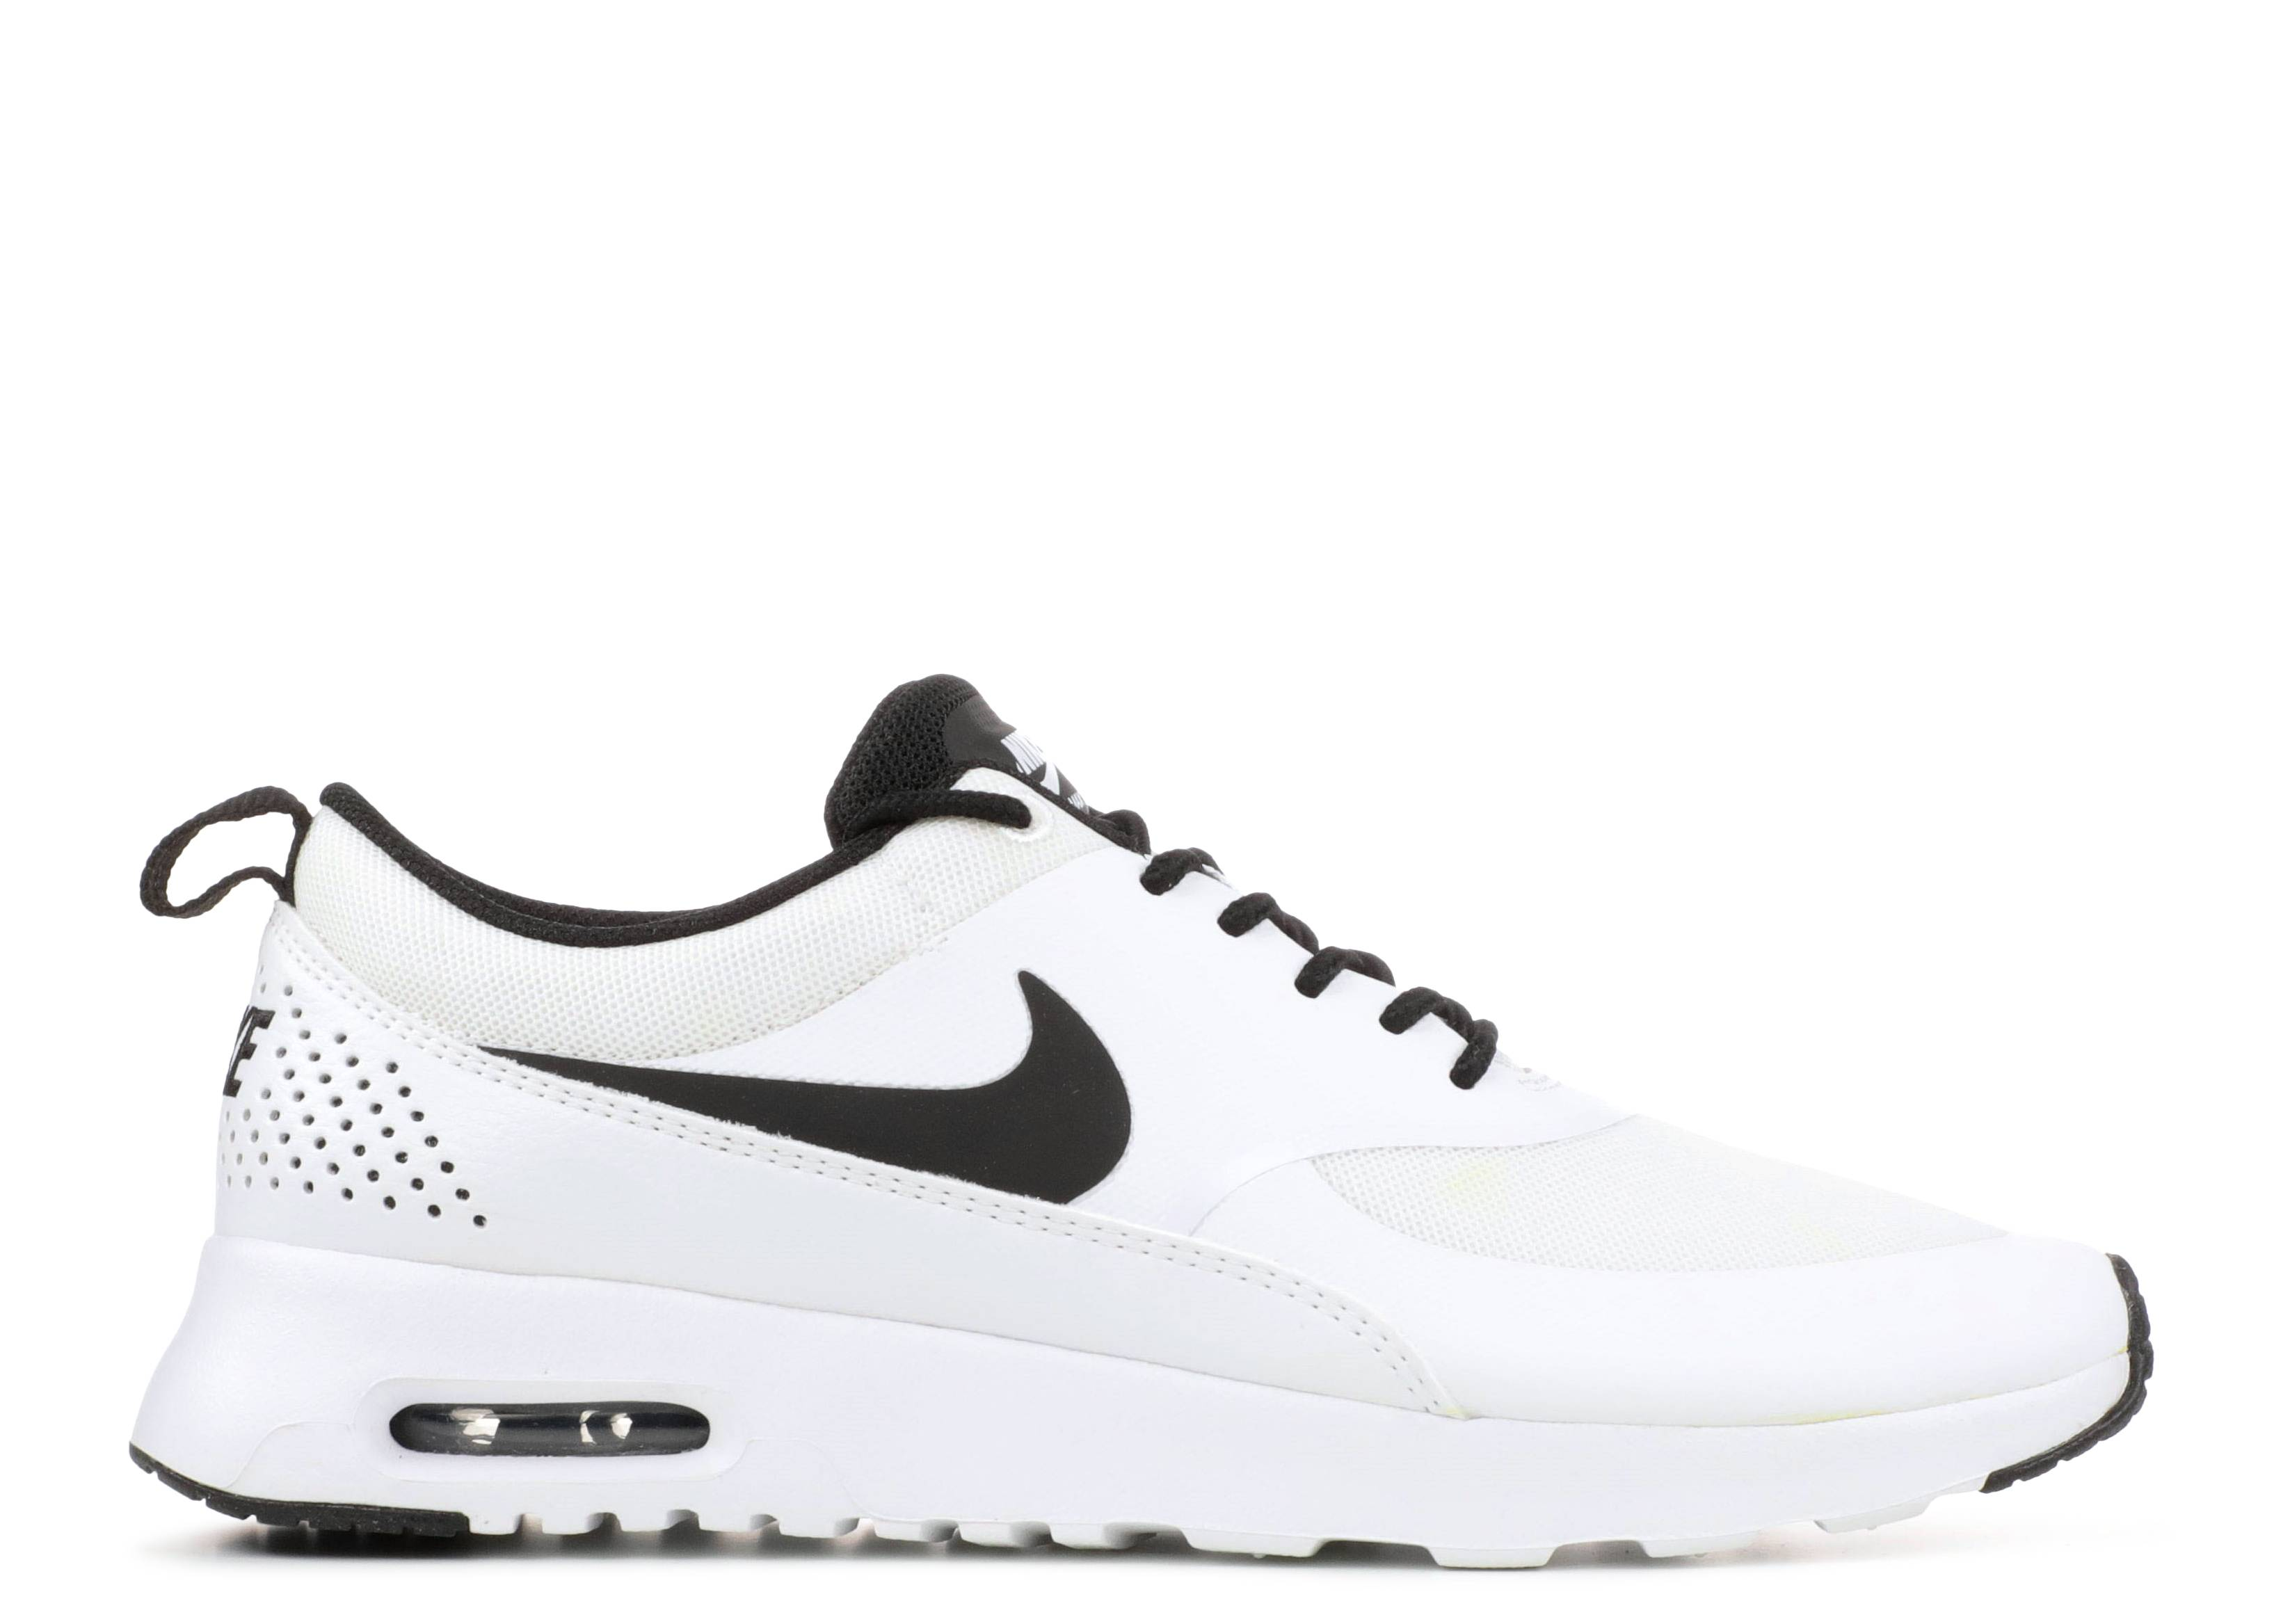 Nike Womens Air Max Thea Running Shoes 599409 029